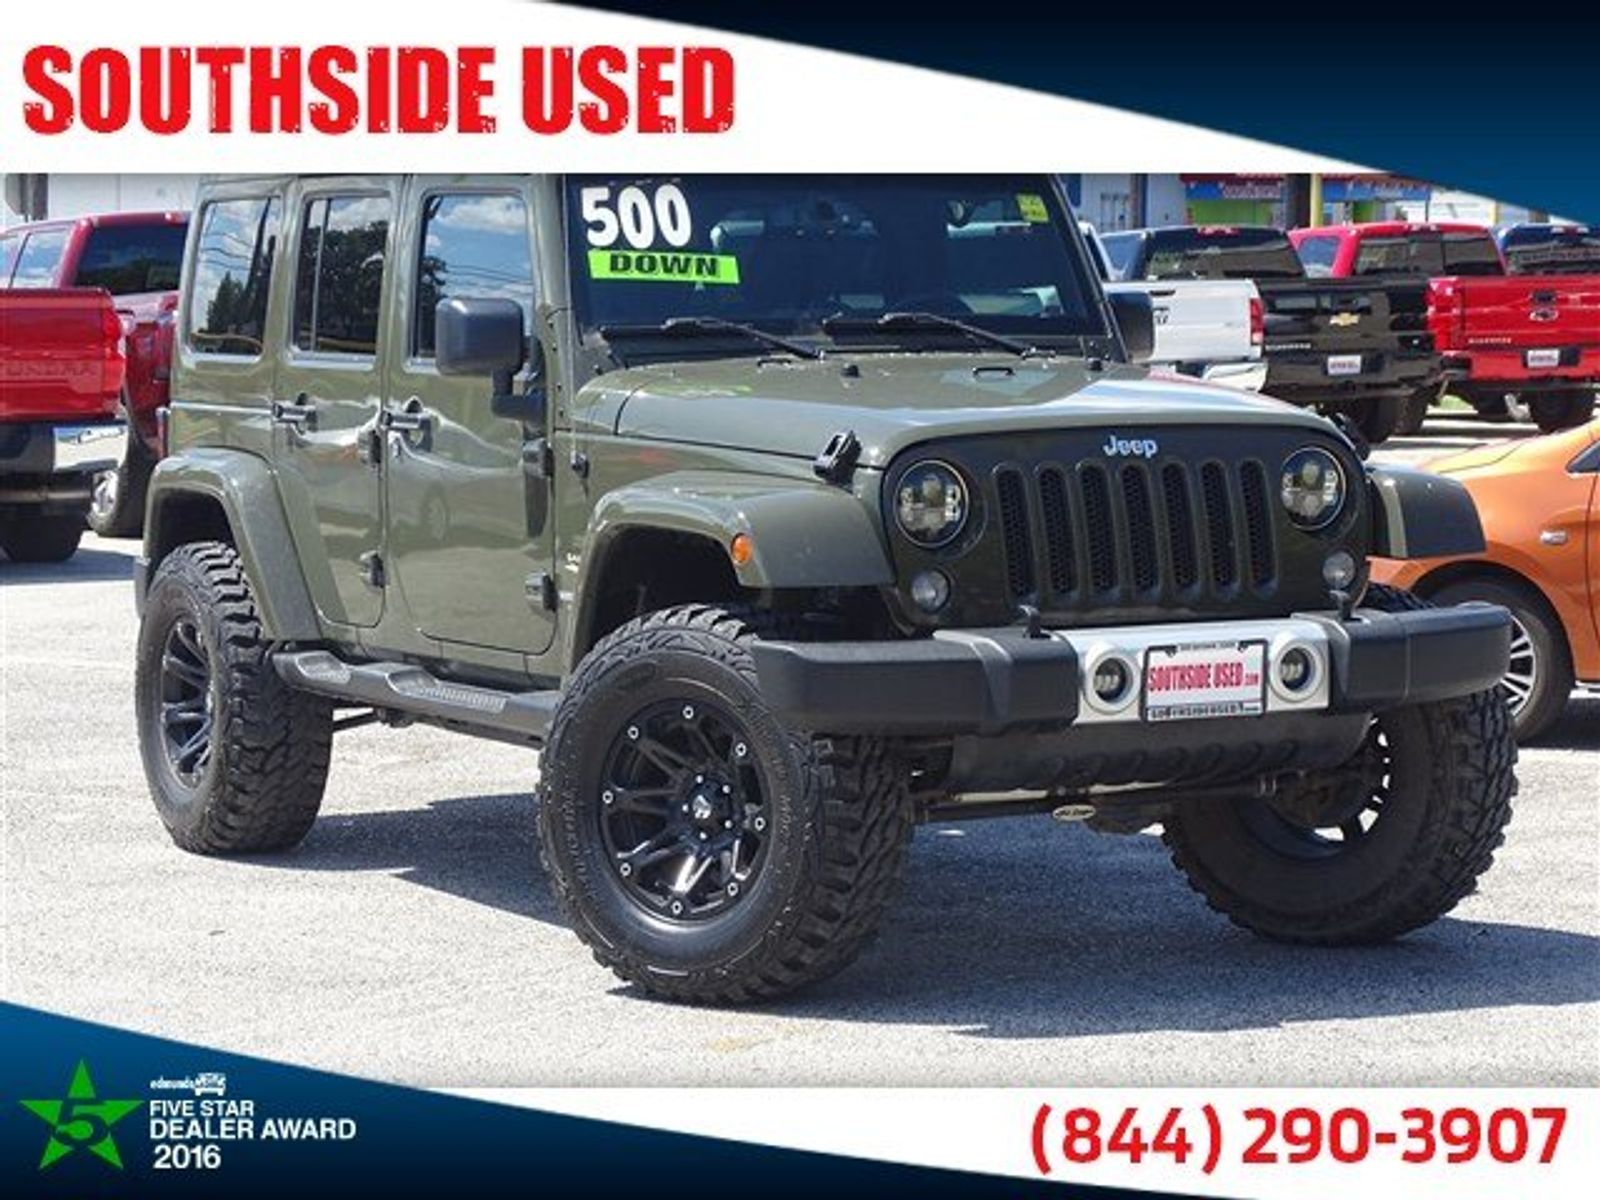 2015 jeep wrangler unlimited sahara san antonio tx southside used san antonio tx 78214 page 6695774 2015 jeep wrangler unlimited sahara